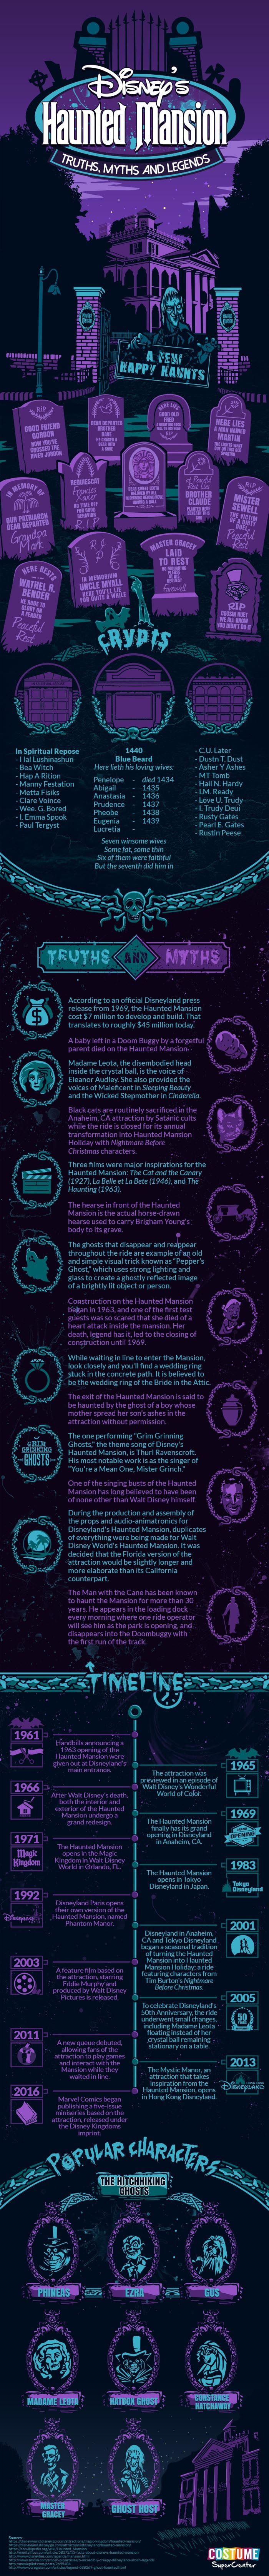 Disney's Haunted Mansion: Truths, Myths & Legends